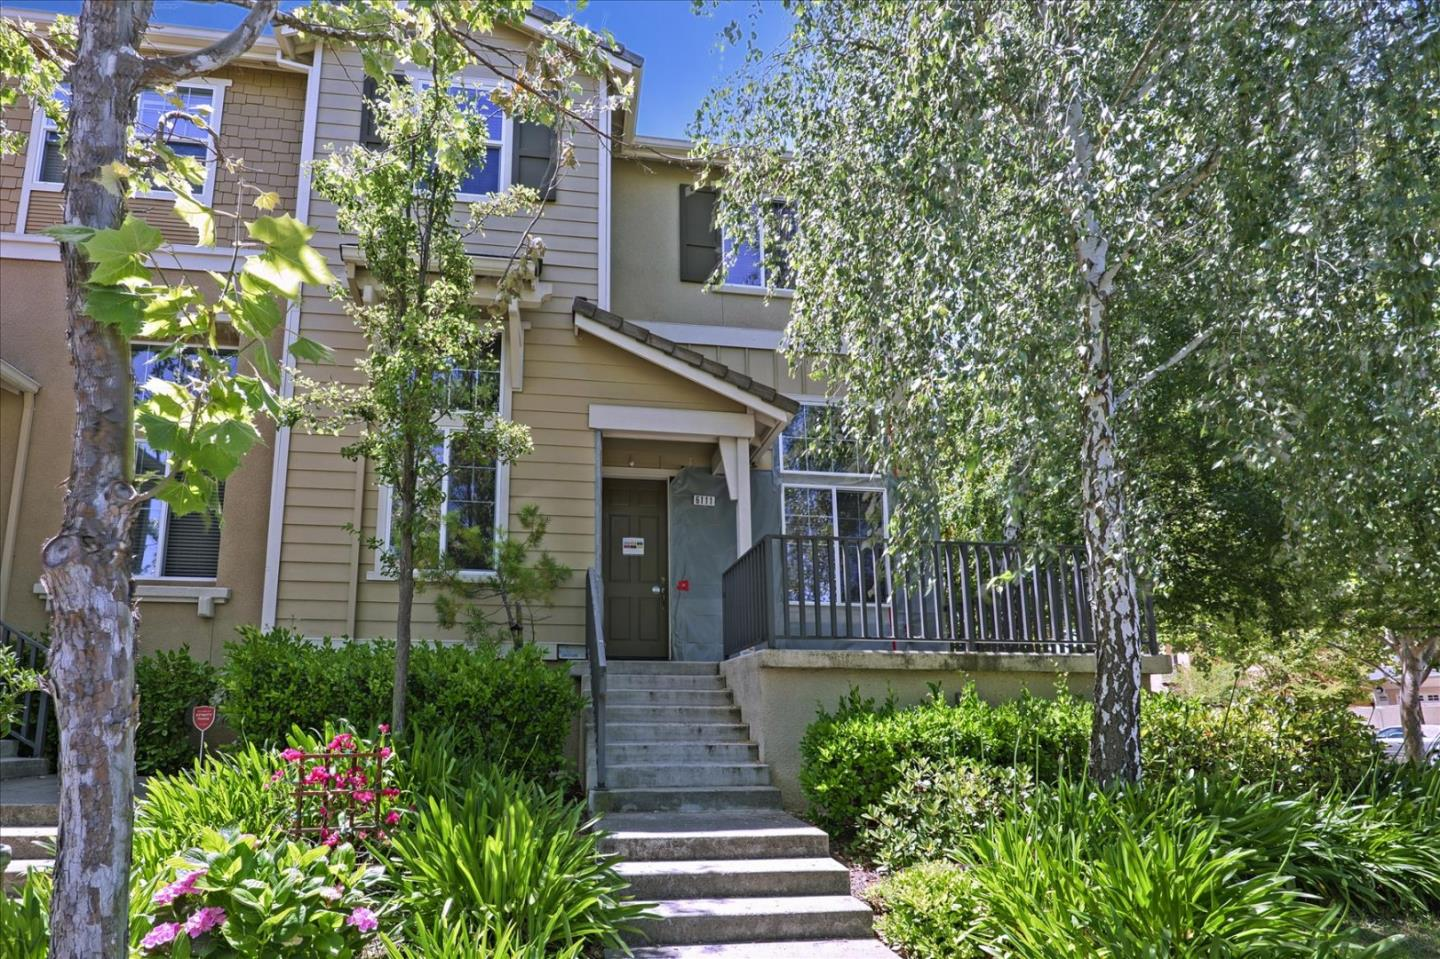 Tastefully staged! Absolutely beautiful 4BR+3BA townhouse, in a quiet location adjacent to the community pool. Most sought after Windermere neighborhood, walking distance to top rated schools, sports parks, and hiking trails. Gorgeous end unit, light & bright, soaring high ceilings and open floor plan, very spacious. Most desirable downstairs bedroom with full bath, perfect for guests or home office. Gourmet kitchen with stainless steel appliances, granite countertop, large island with plenty of cabinets and breakfast nook and more.... A must see!